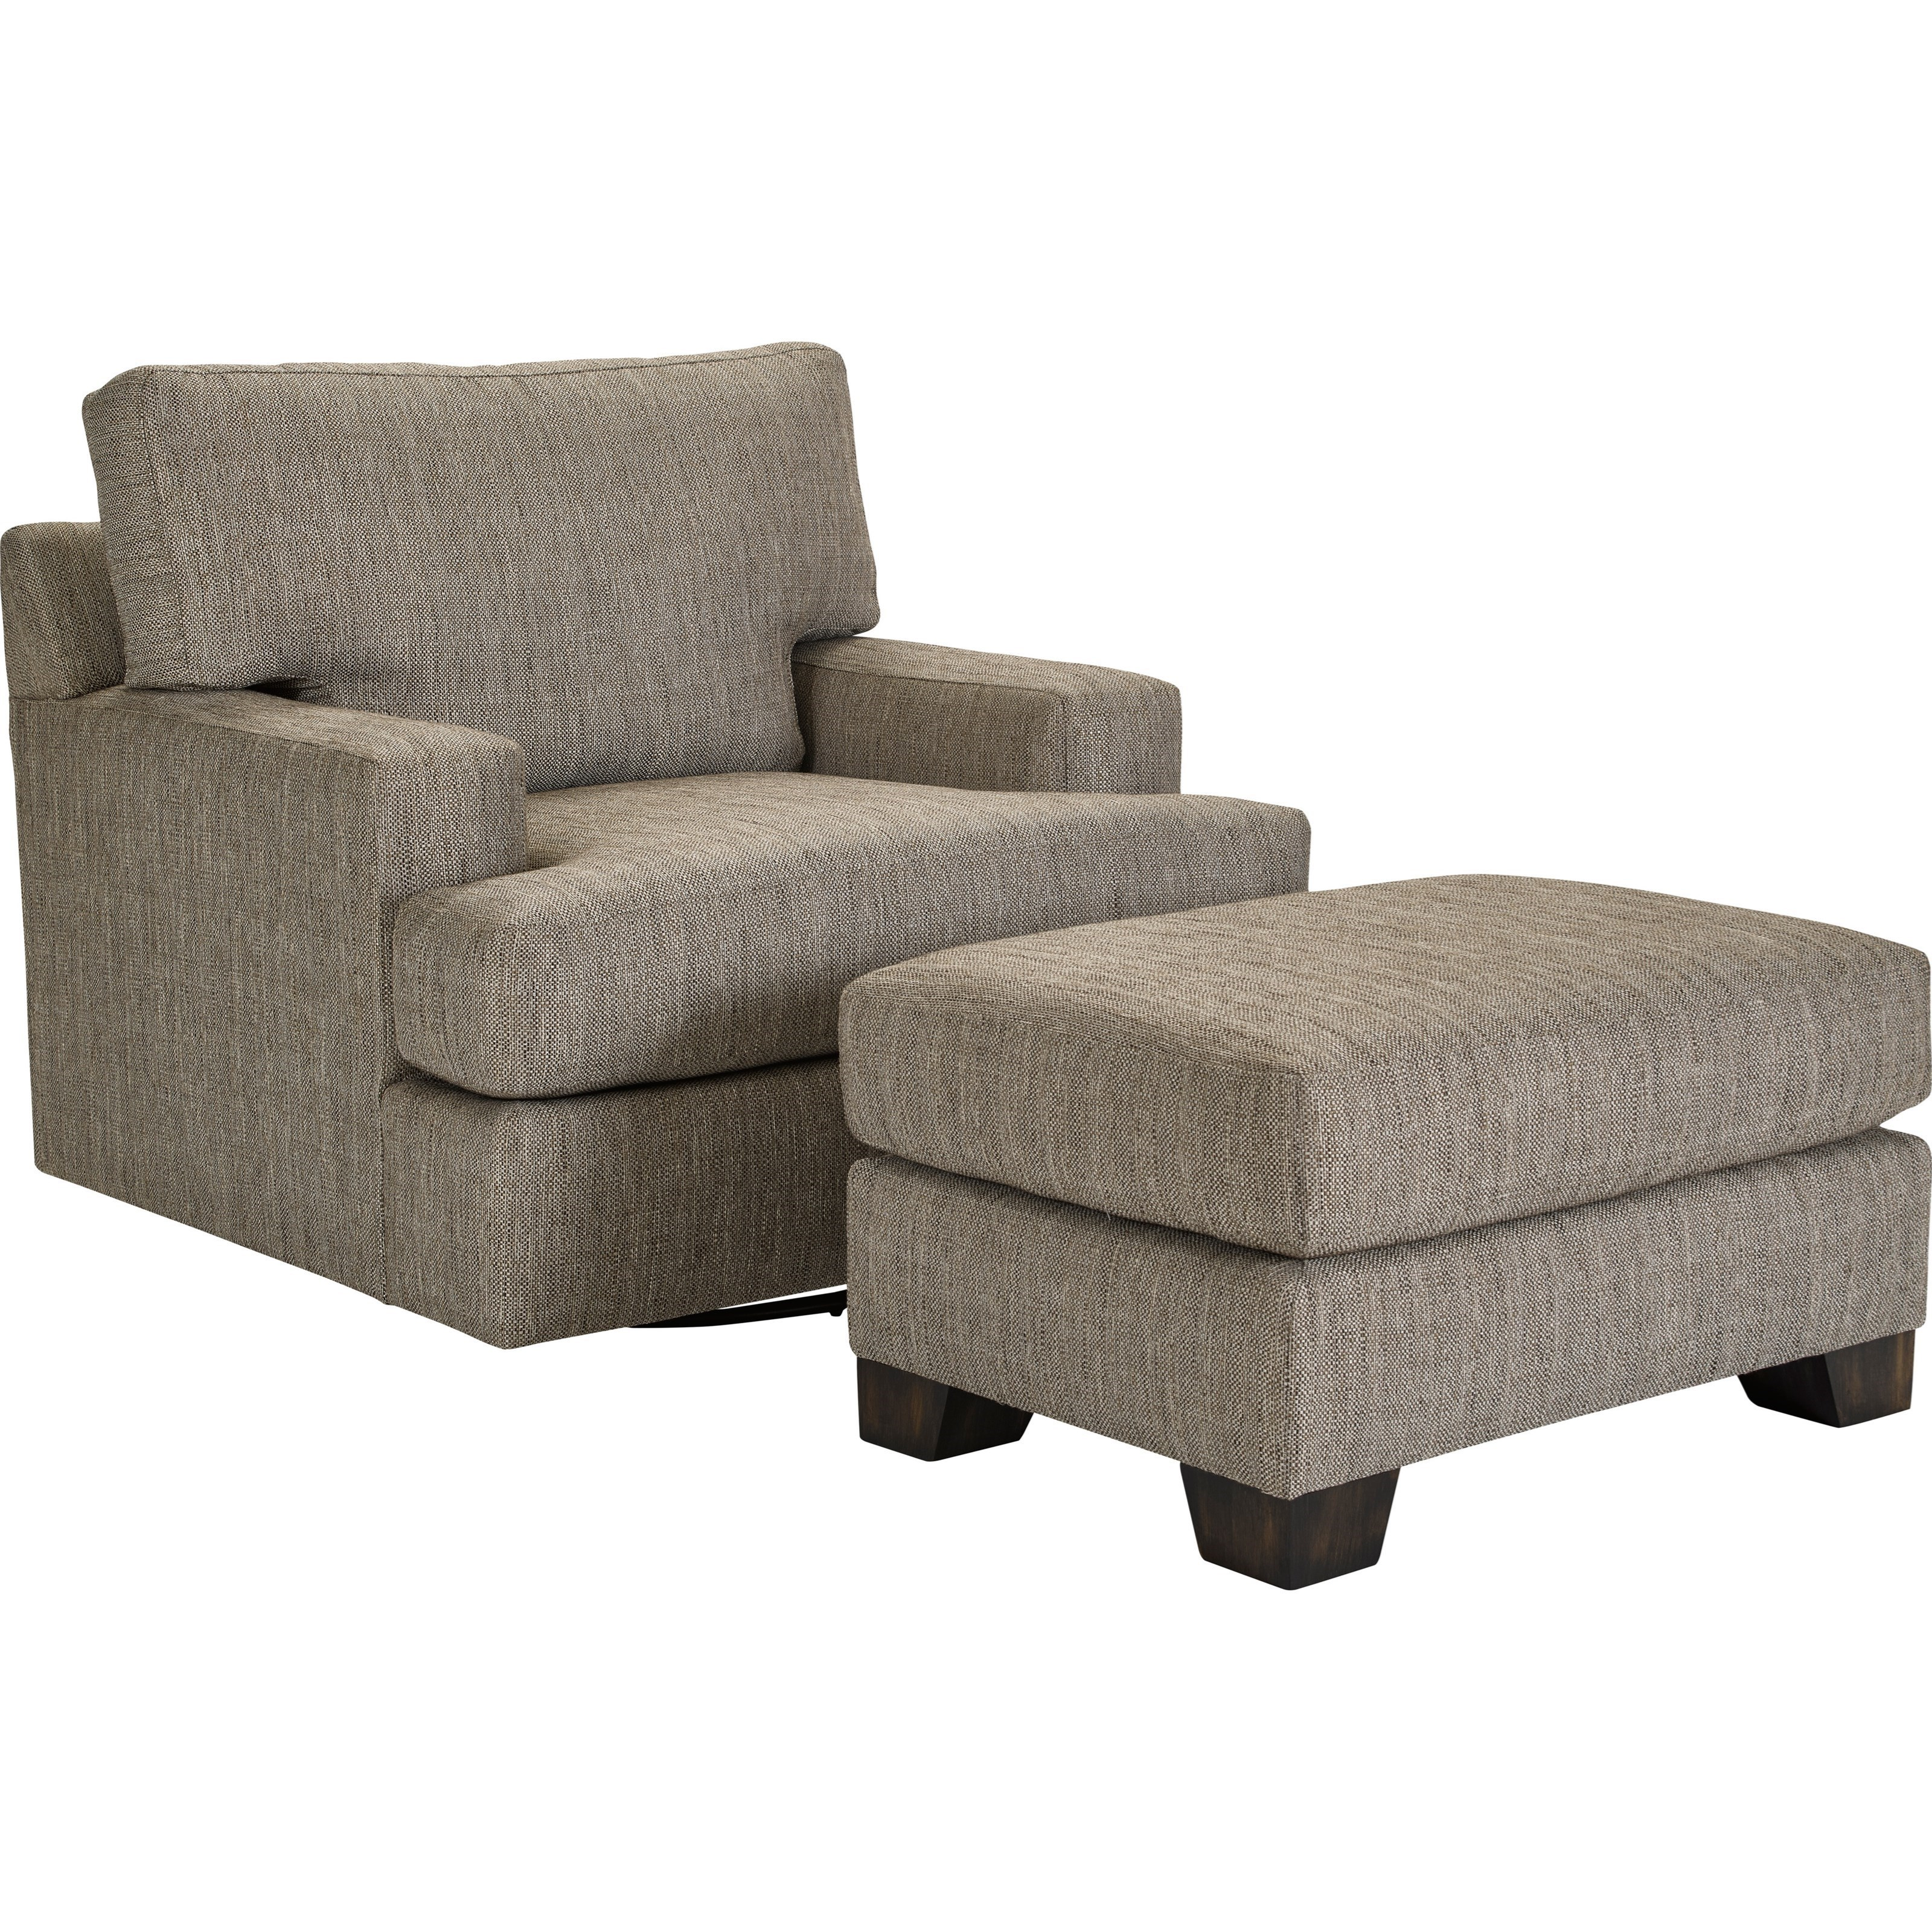 Beau Broyhill Furniture Nash Swivel Chair And Ottoman   Item Number: 4292 8+5